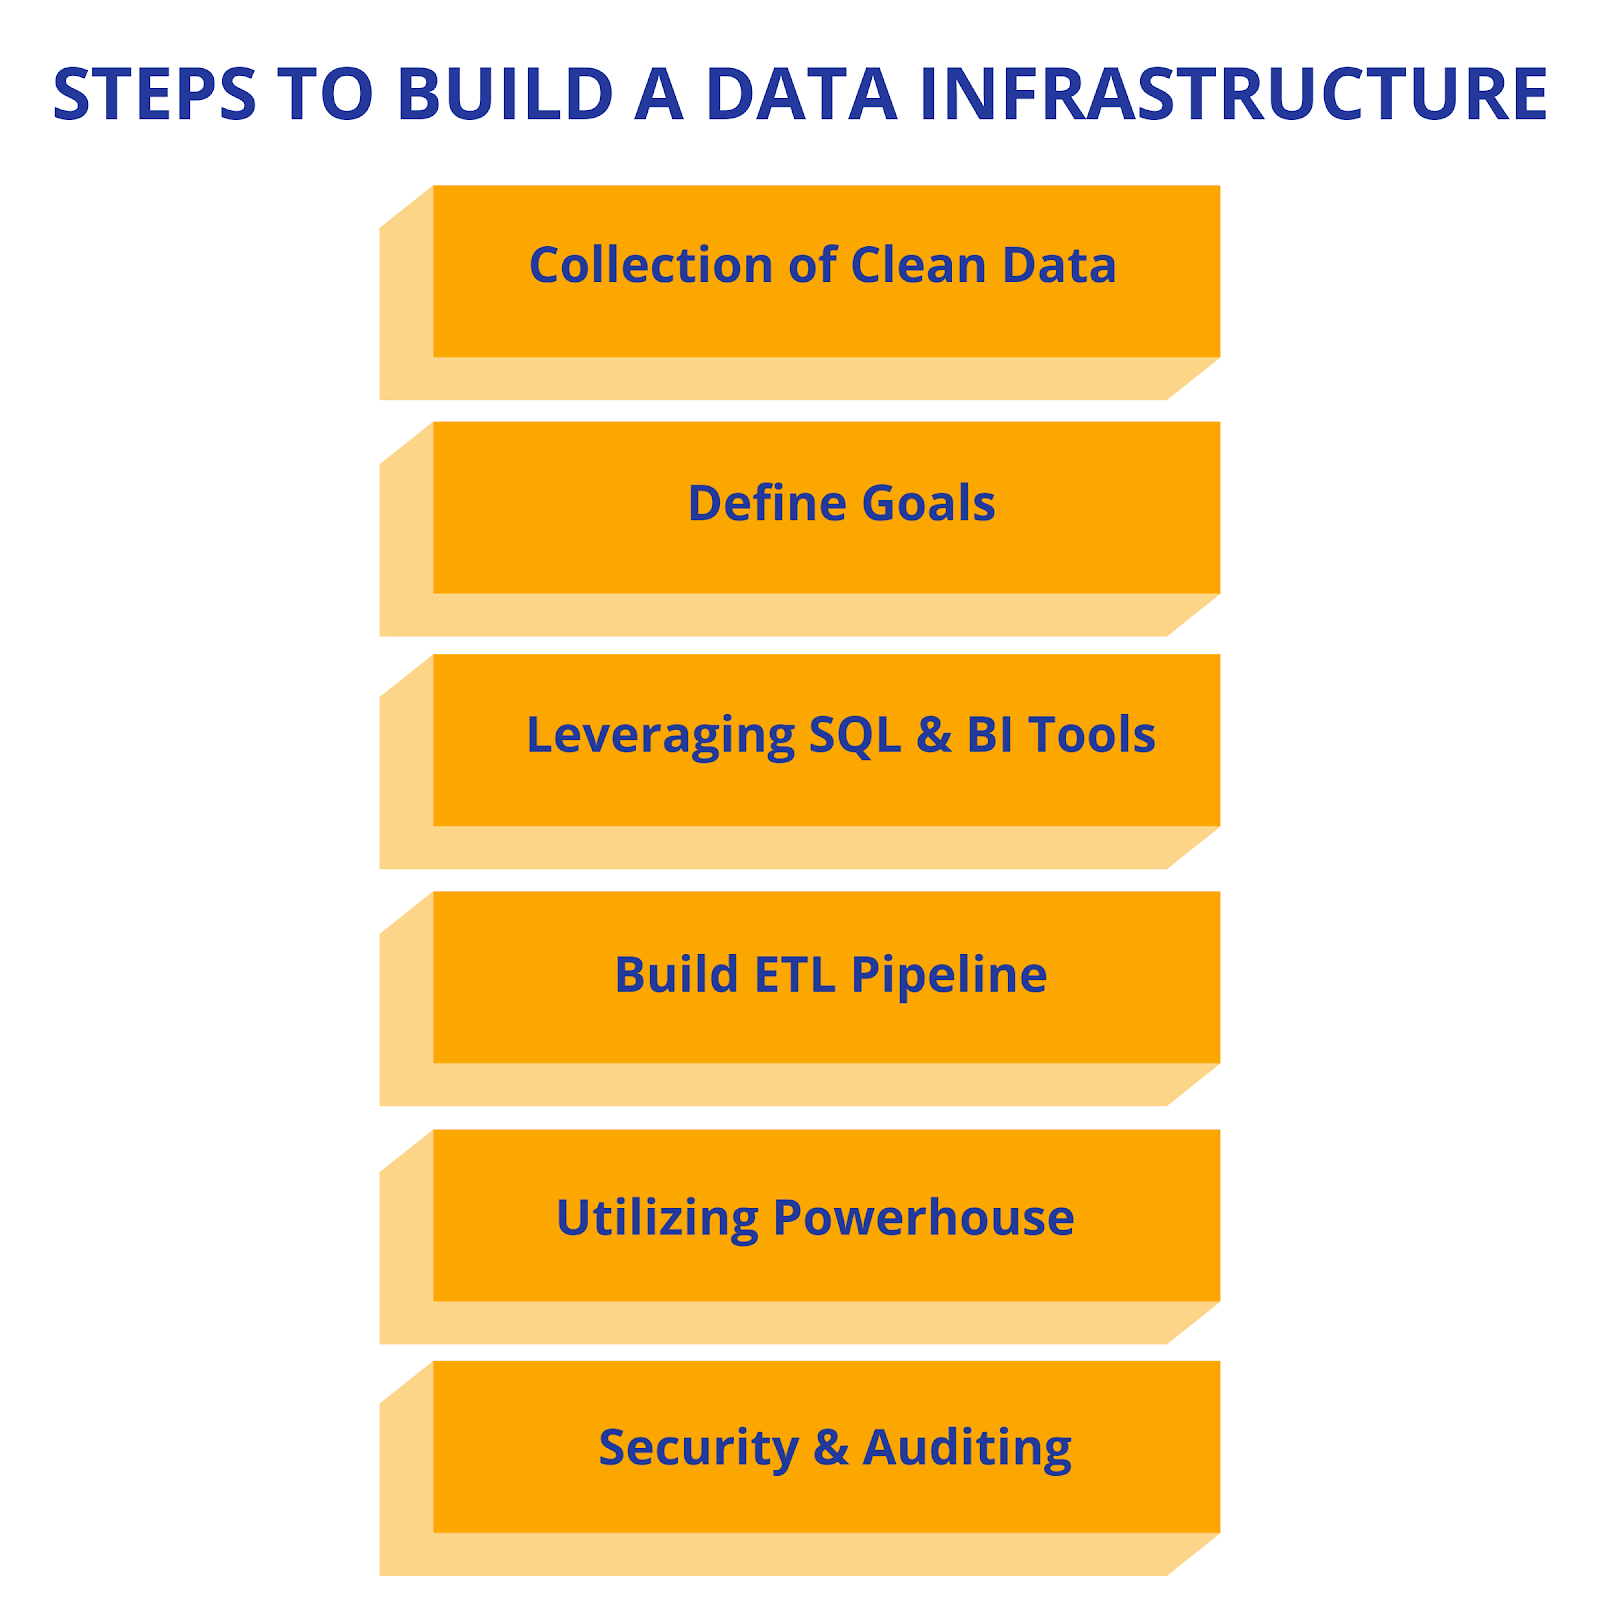 Building Data Infrastucture